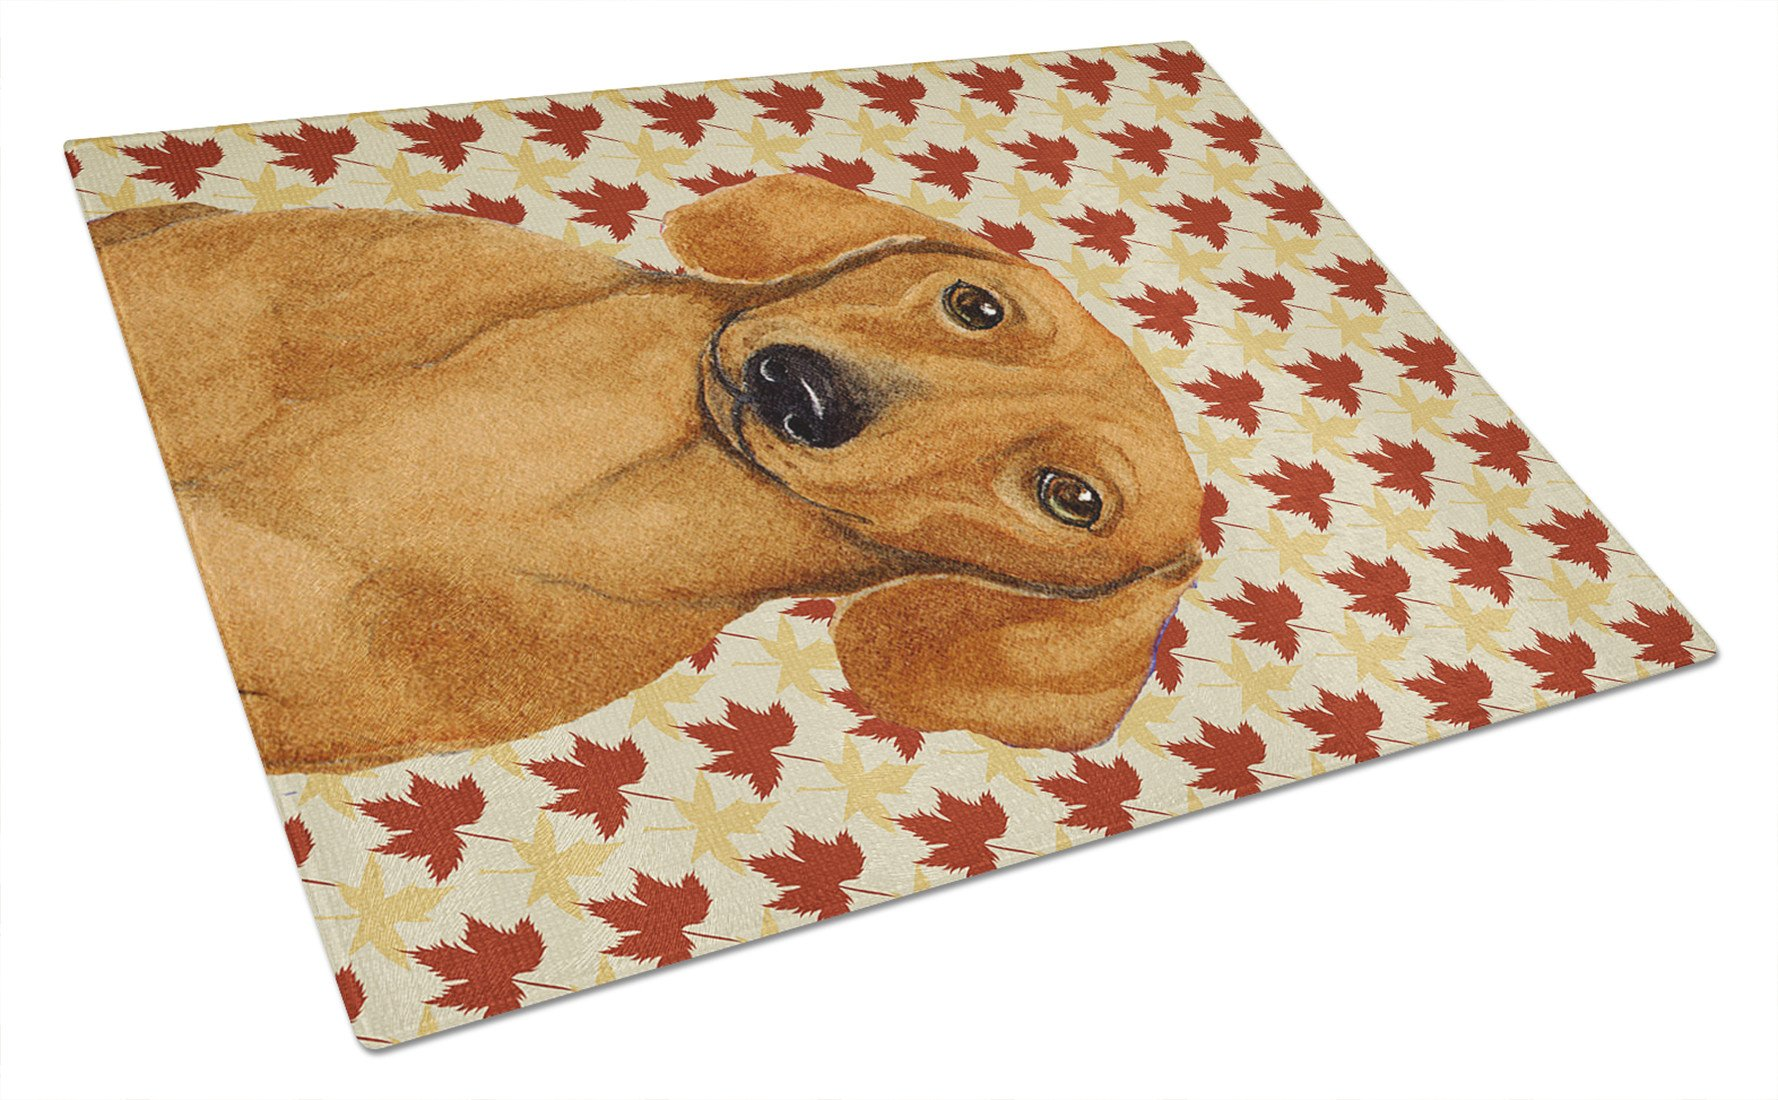 Dachshund Fall Leaves Portrait Glass Cutting Board Large by Caroline's Treasures